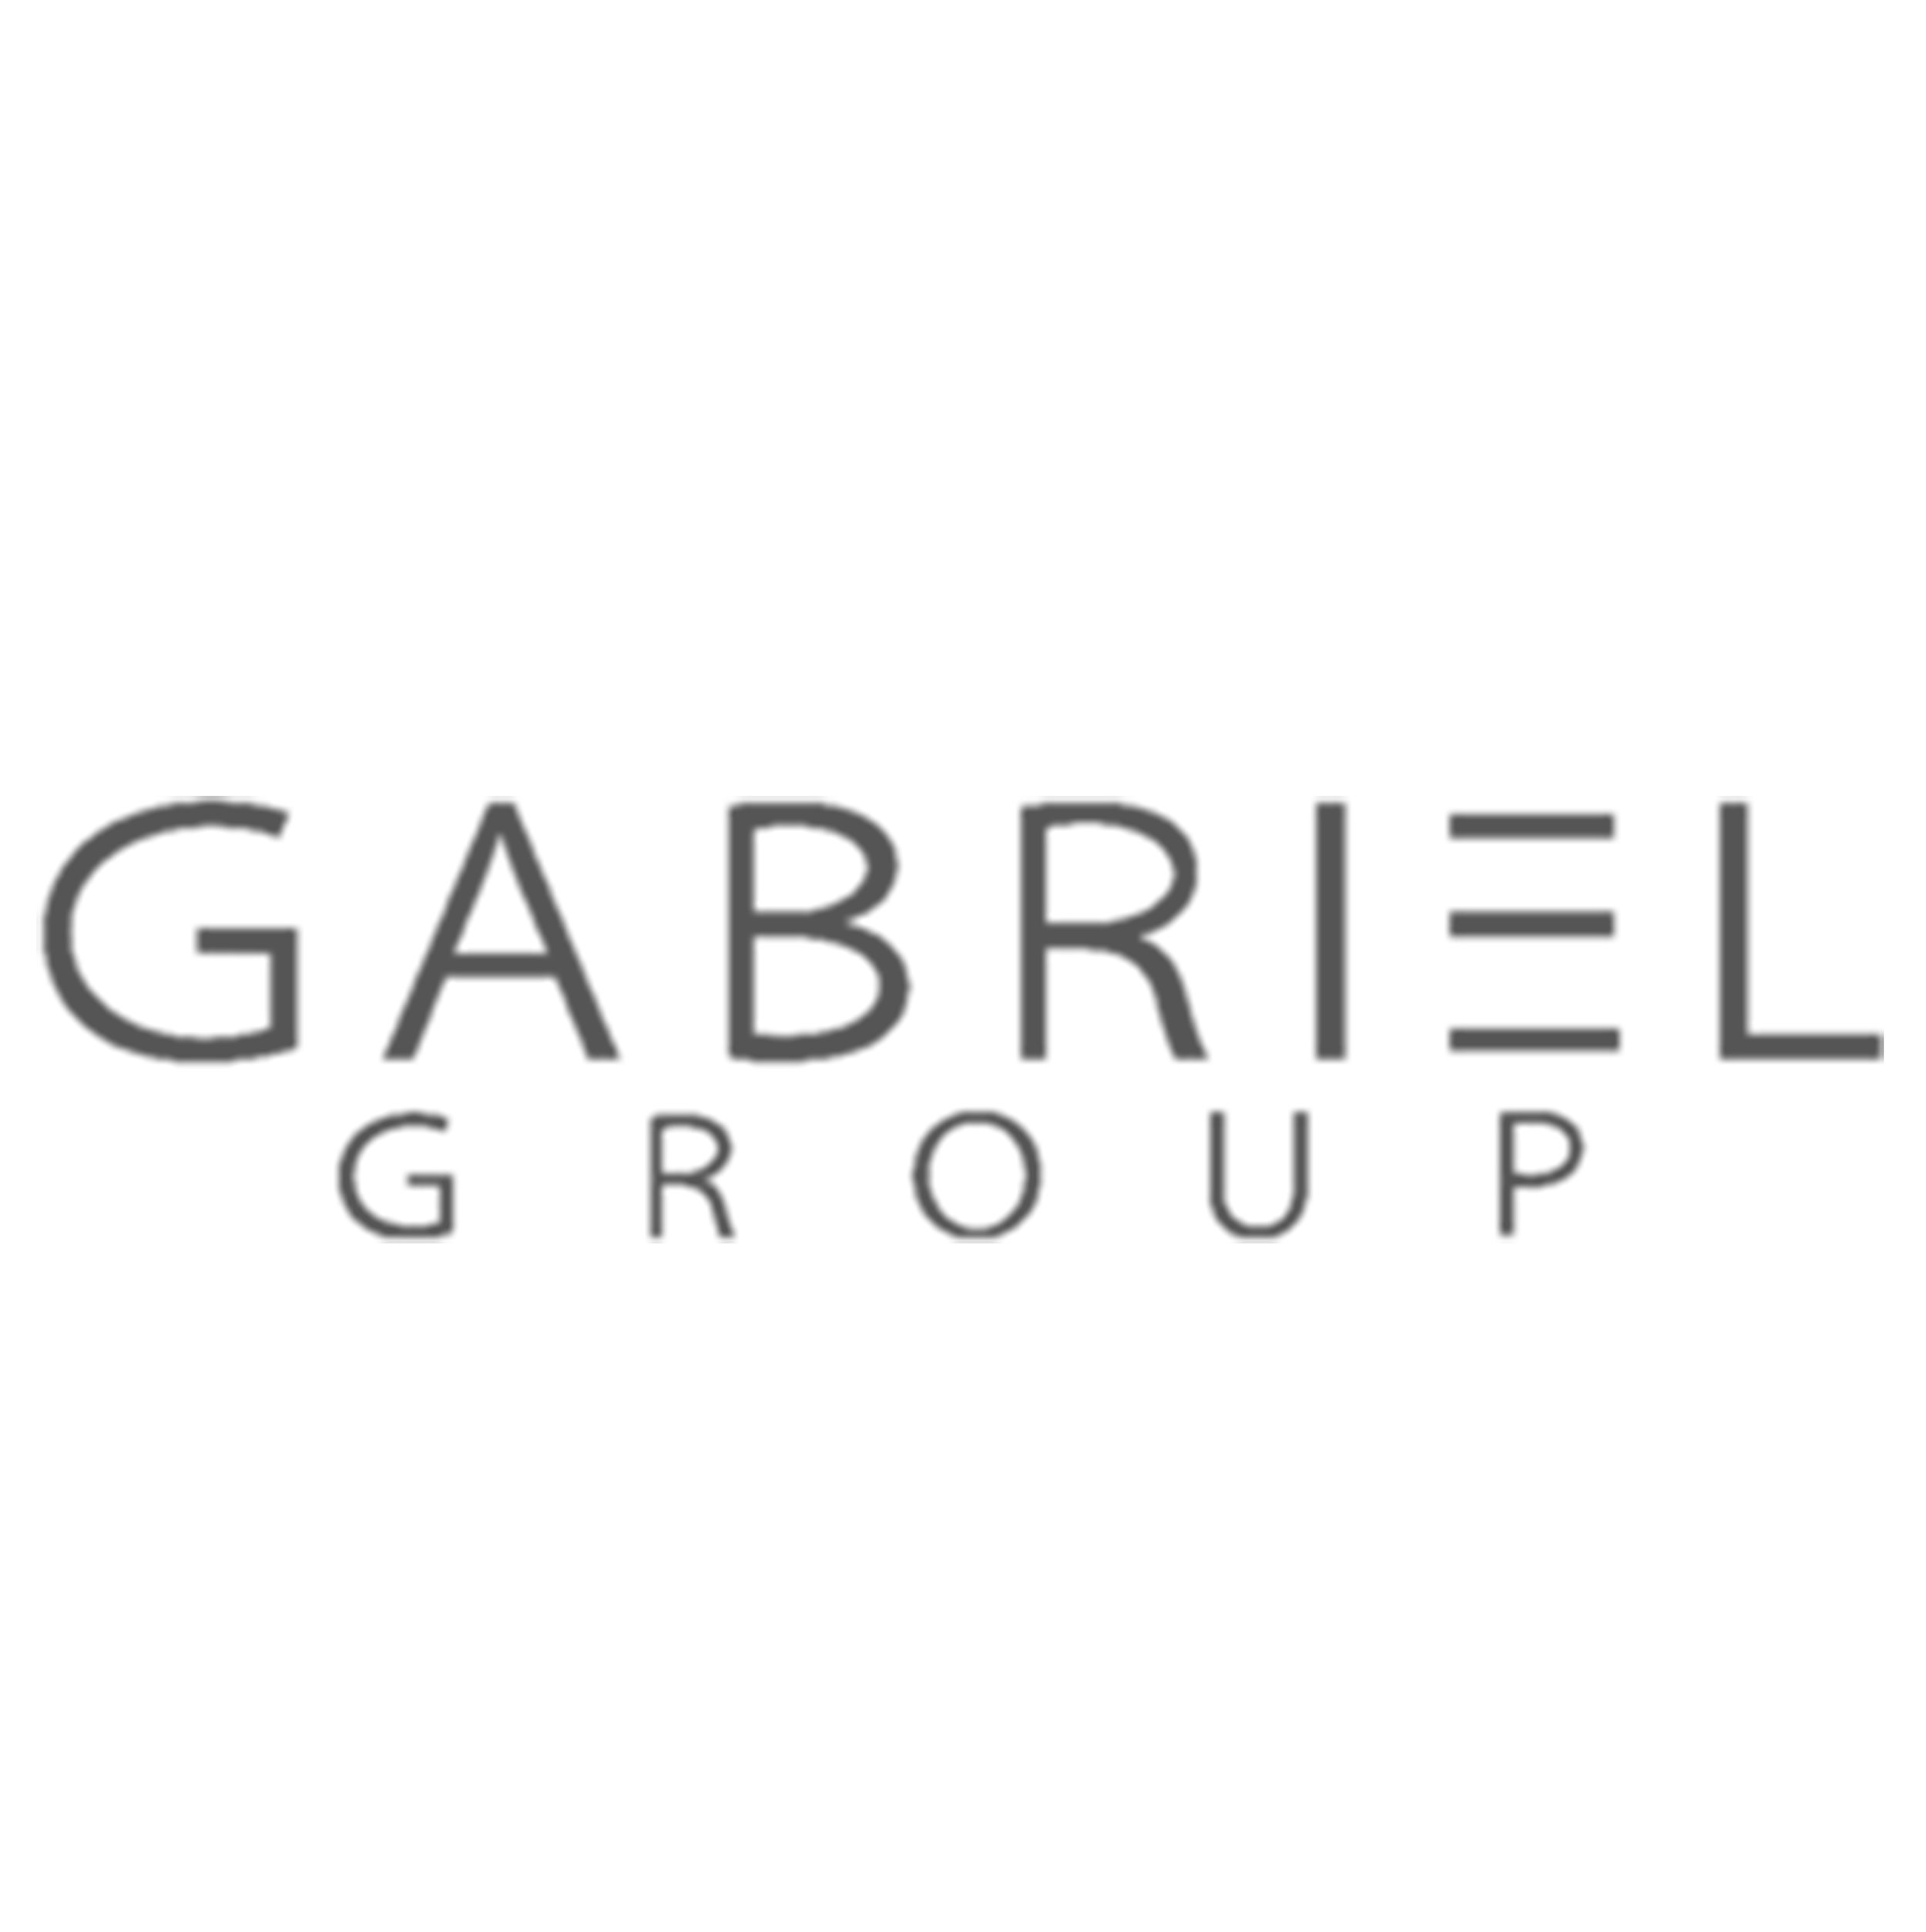 GabrielGroup_Gray.jpg